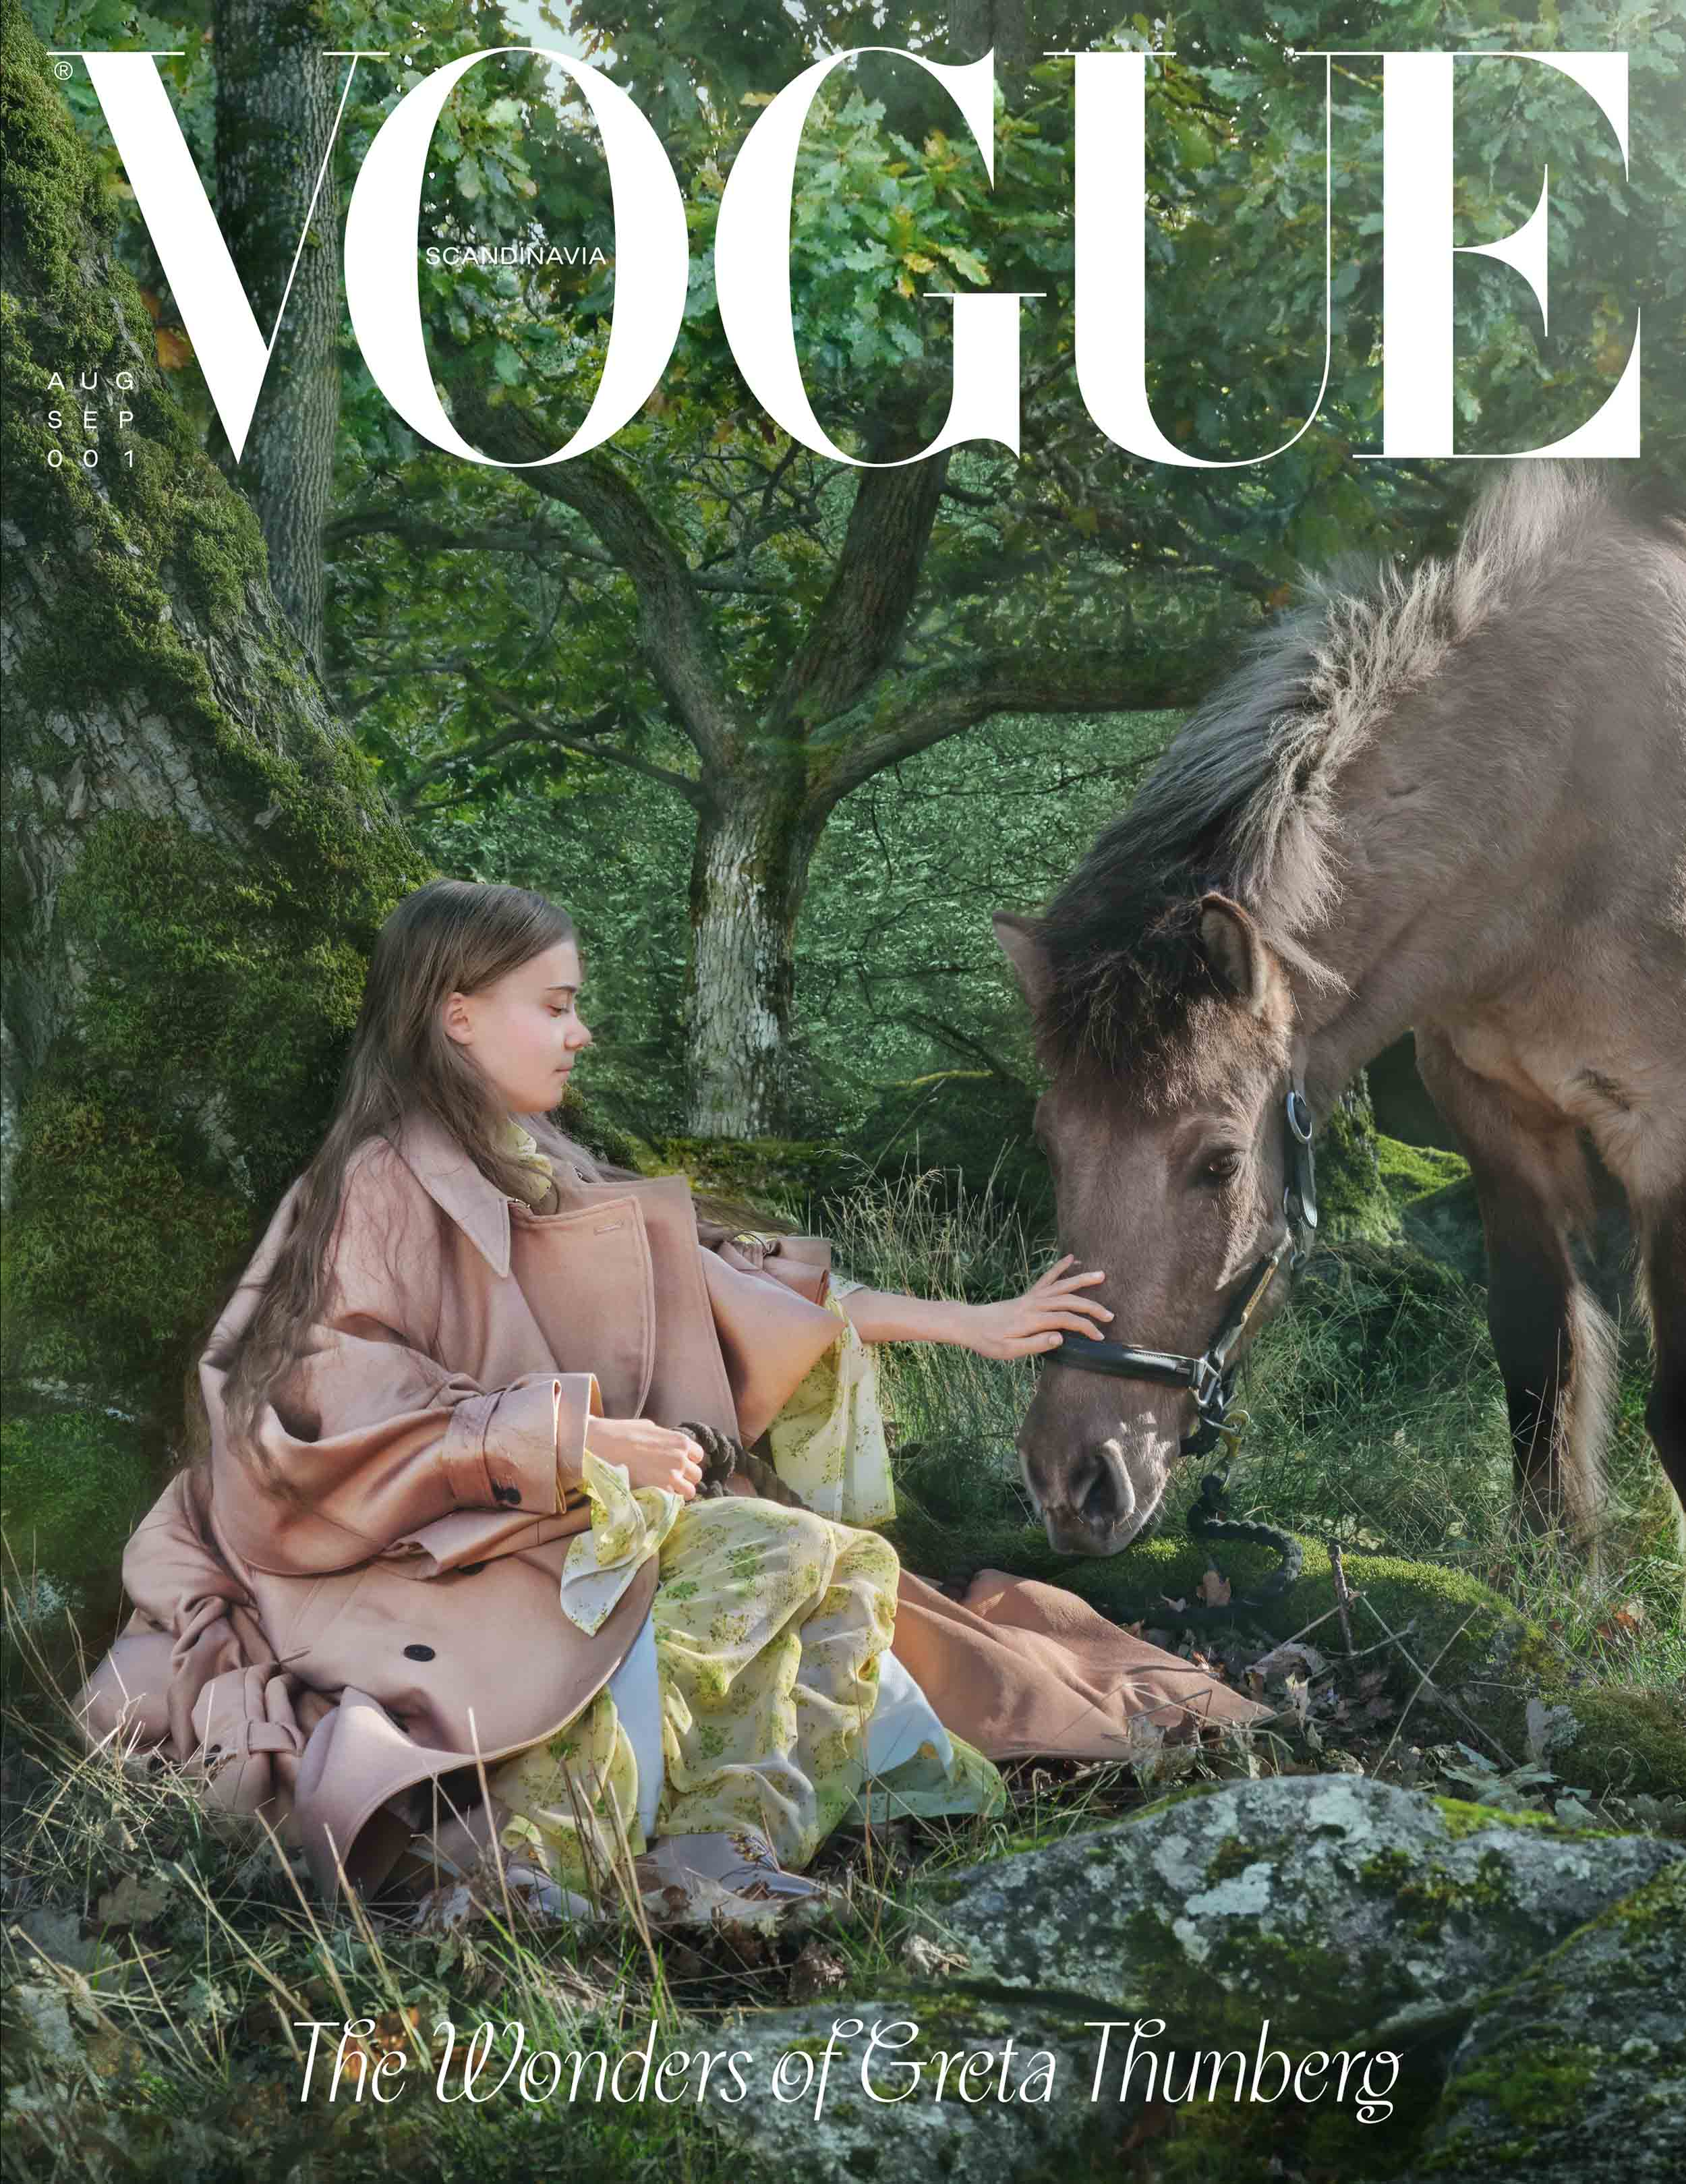 Thunberg's Vogue cover